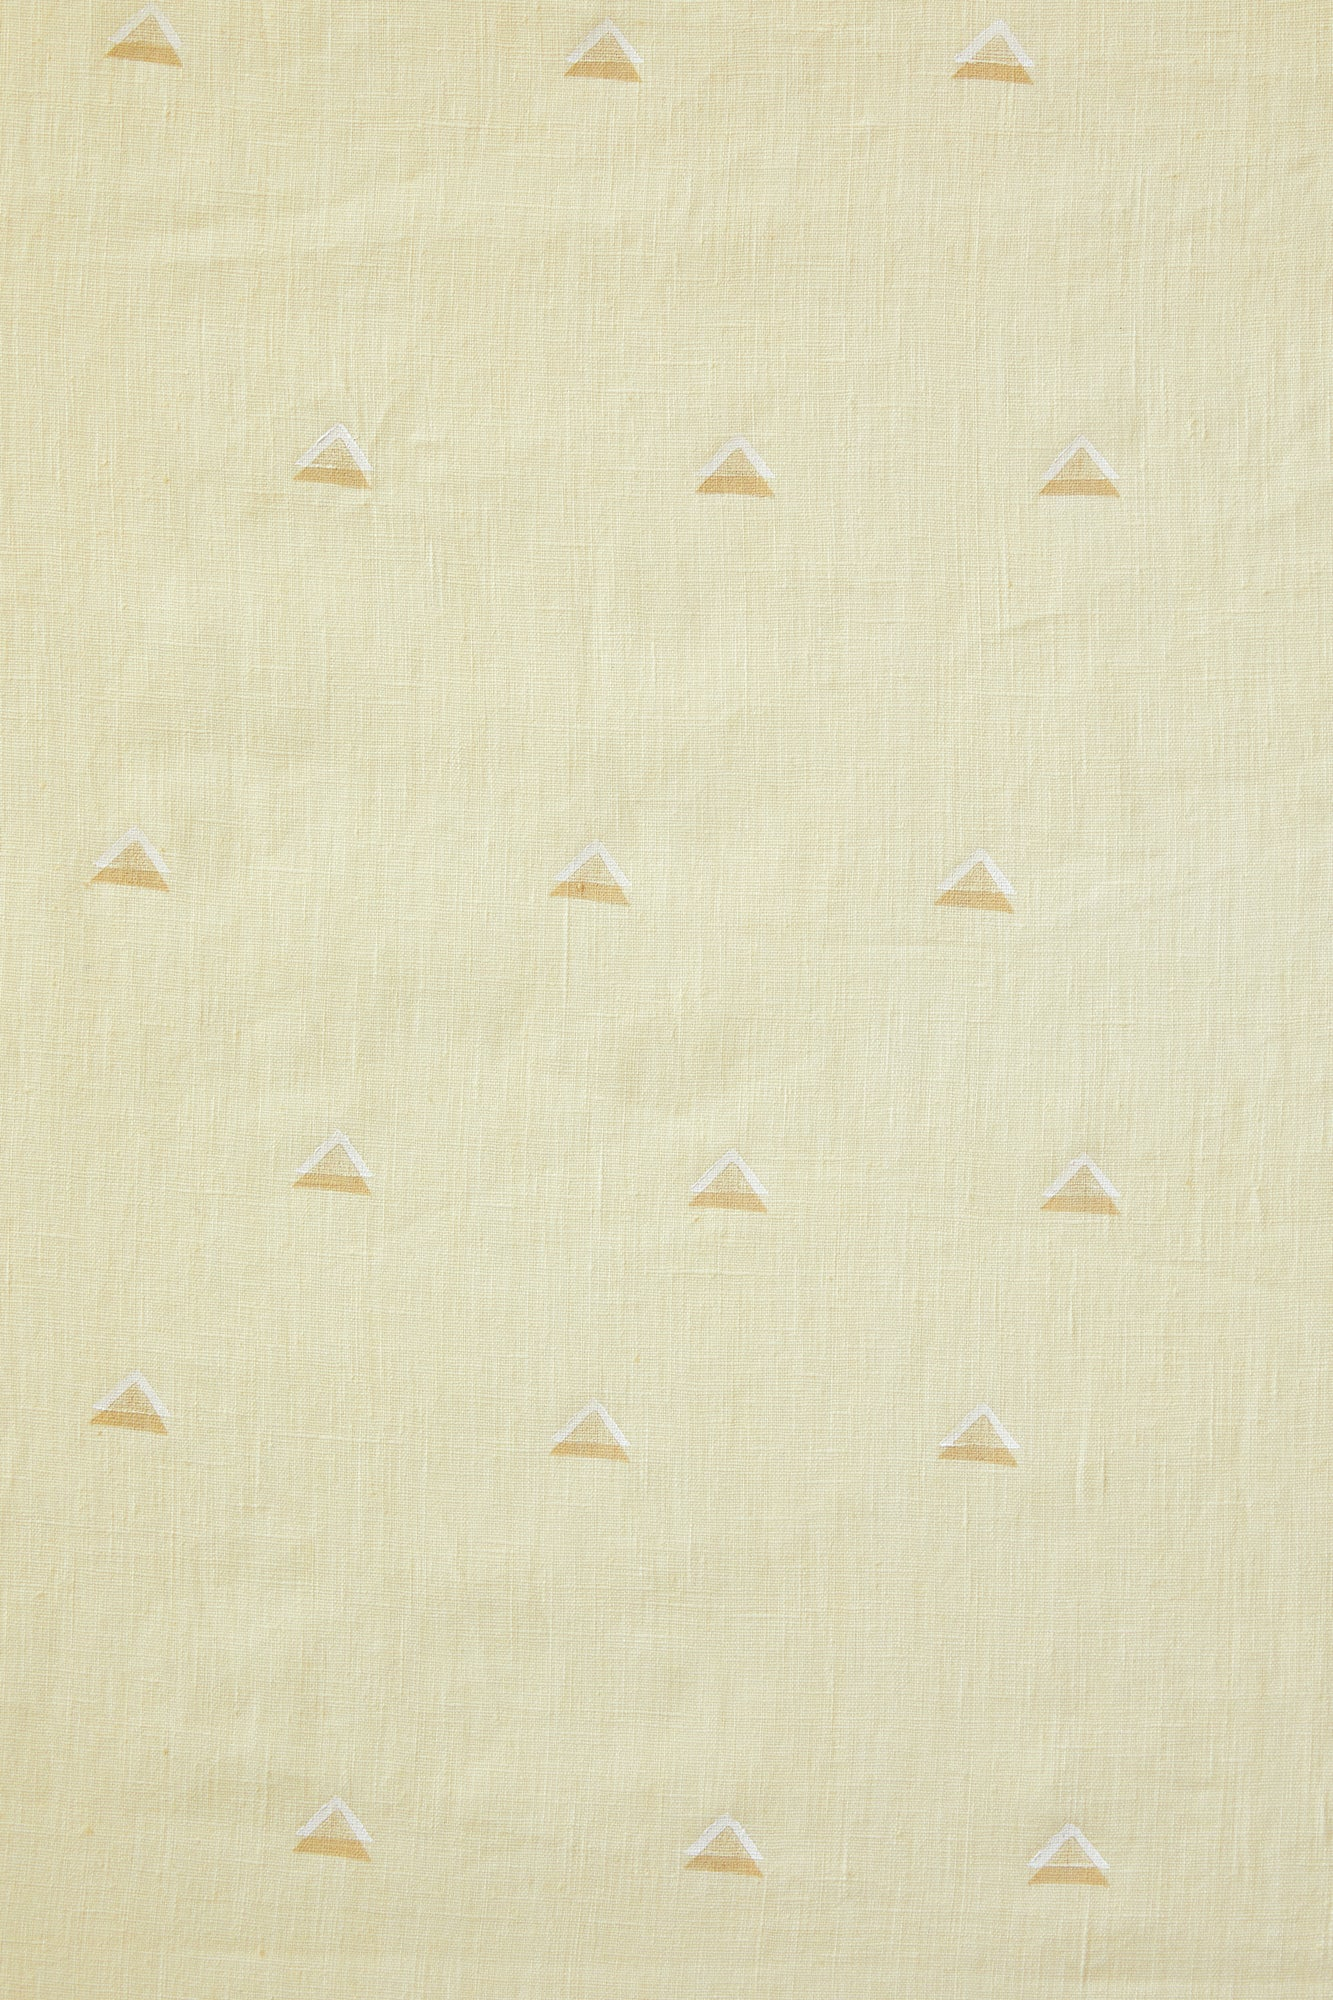 Double Triangle Sun - Fabric By The Yard